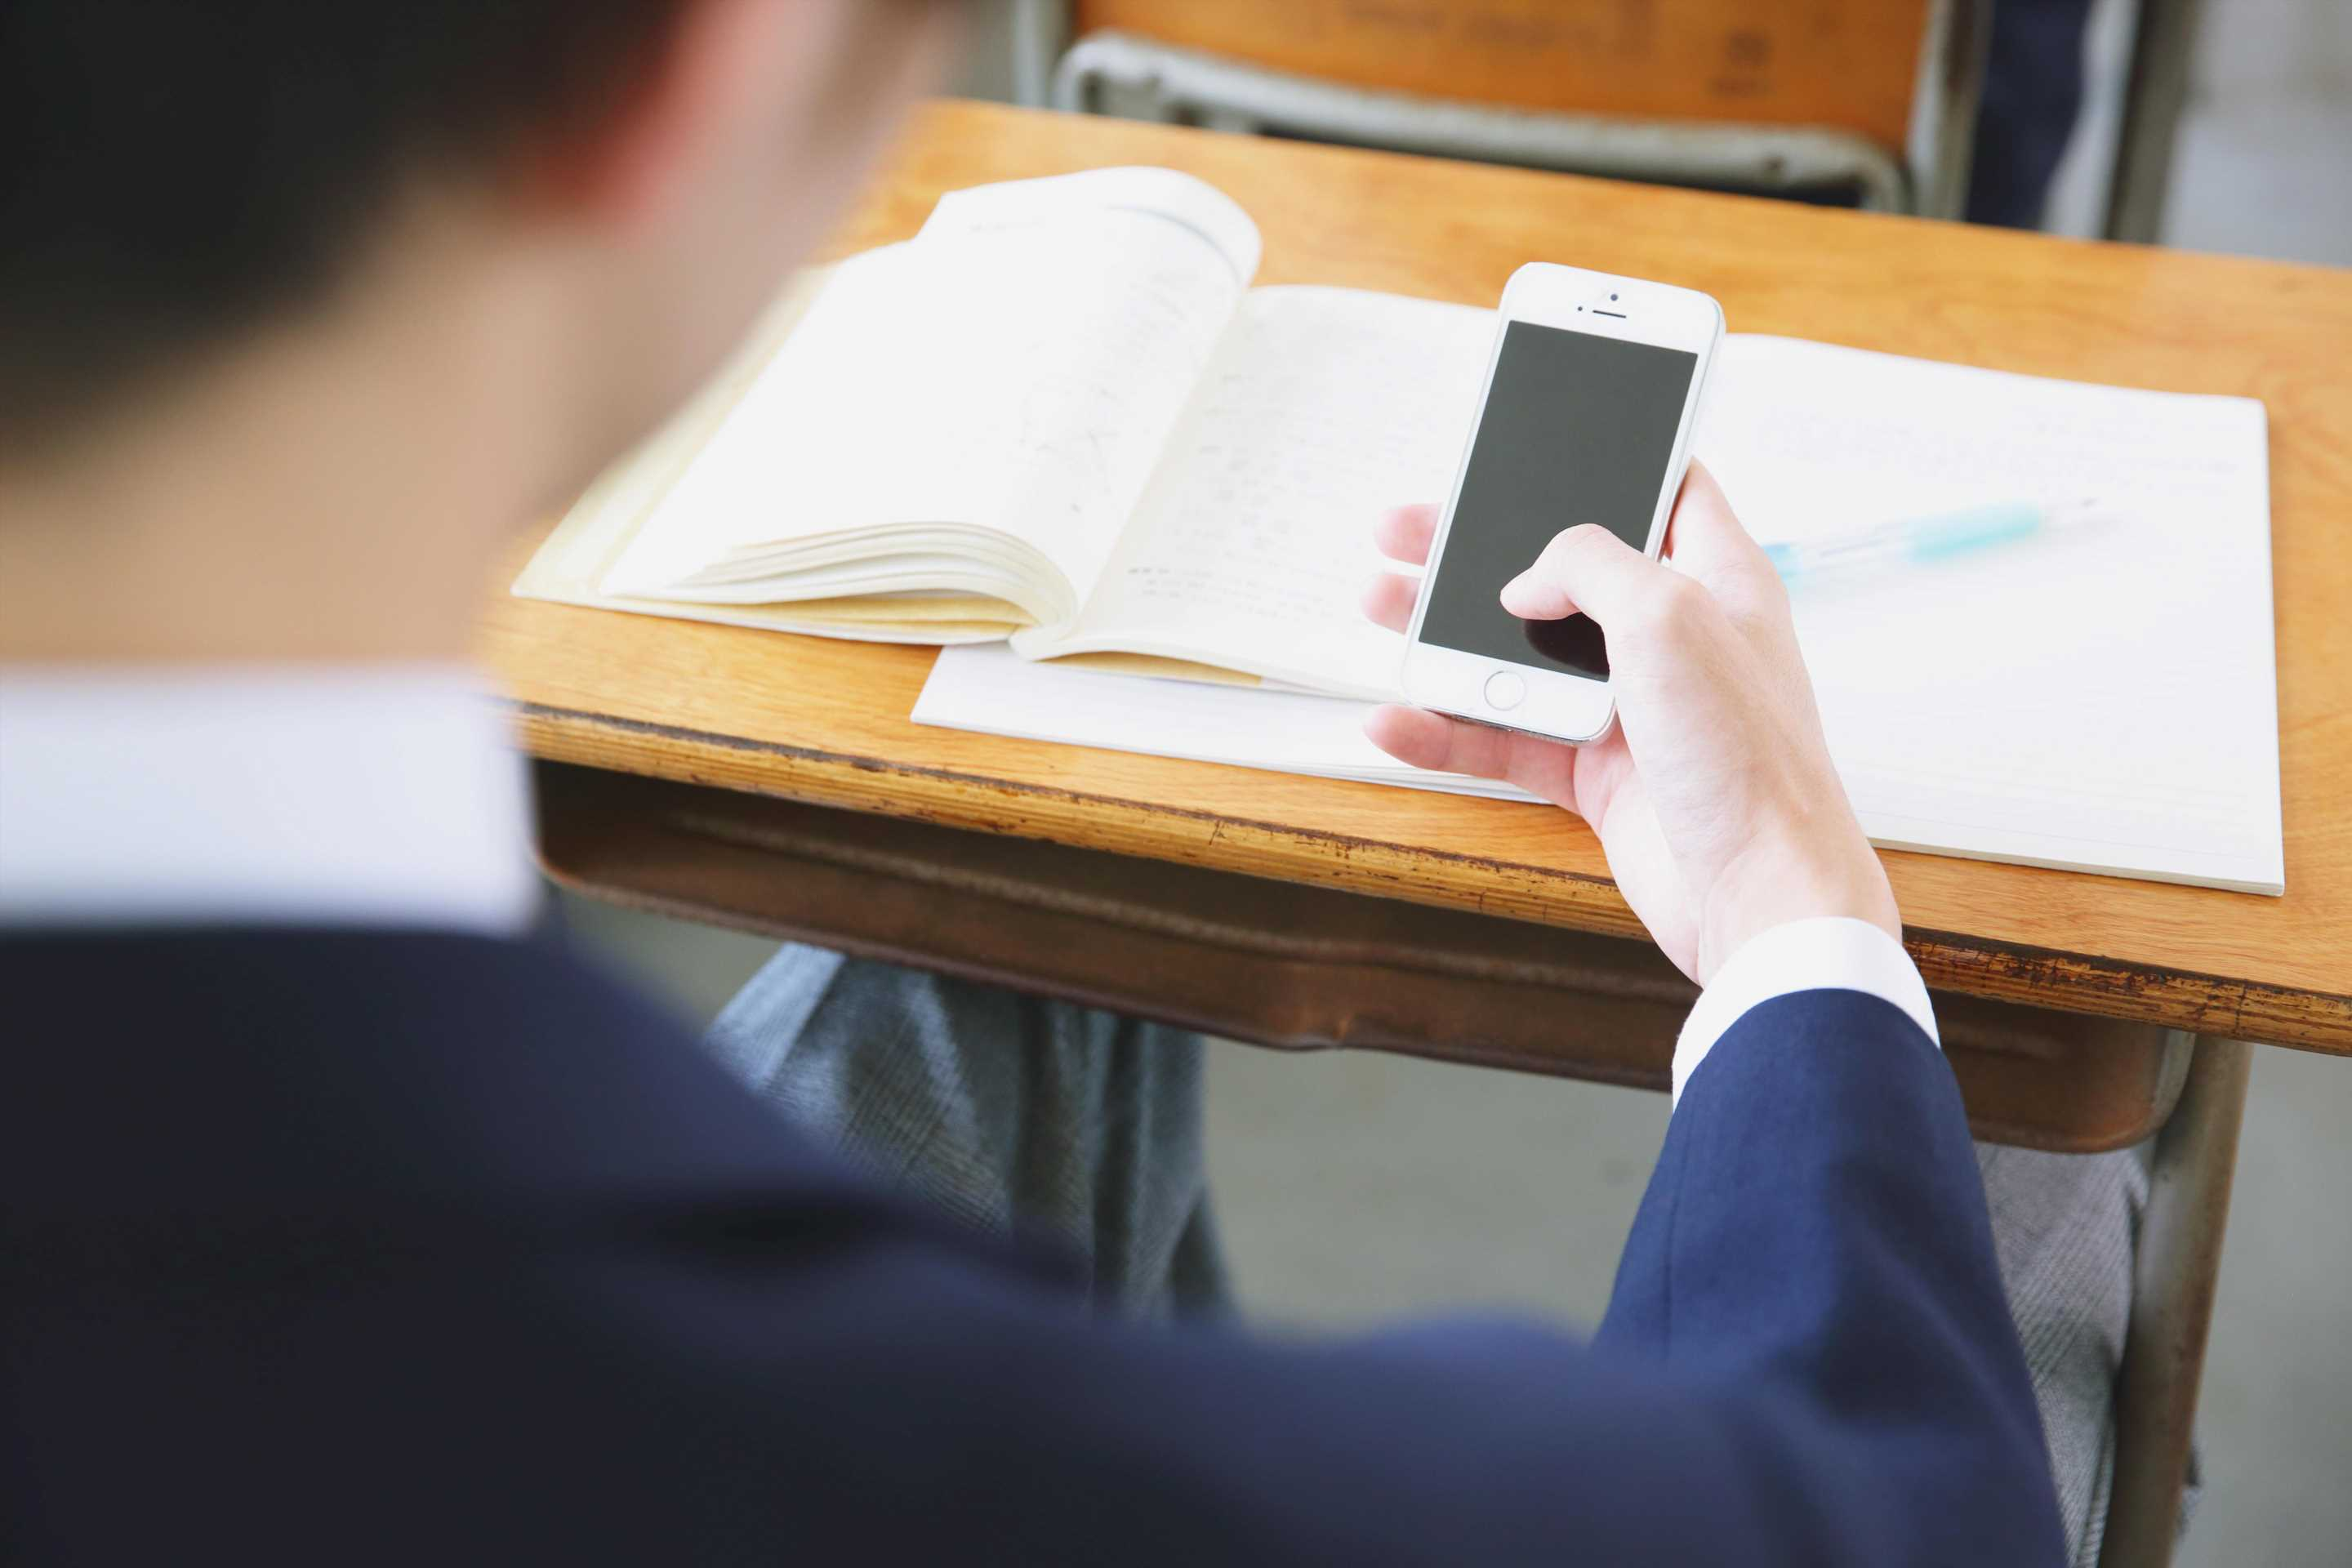 Schools should ban mobiles because they 'cause daily disruption in class' and pose serious issues for teachers